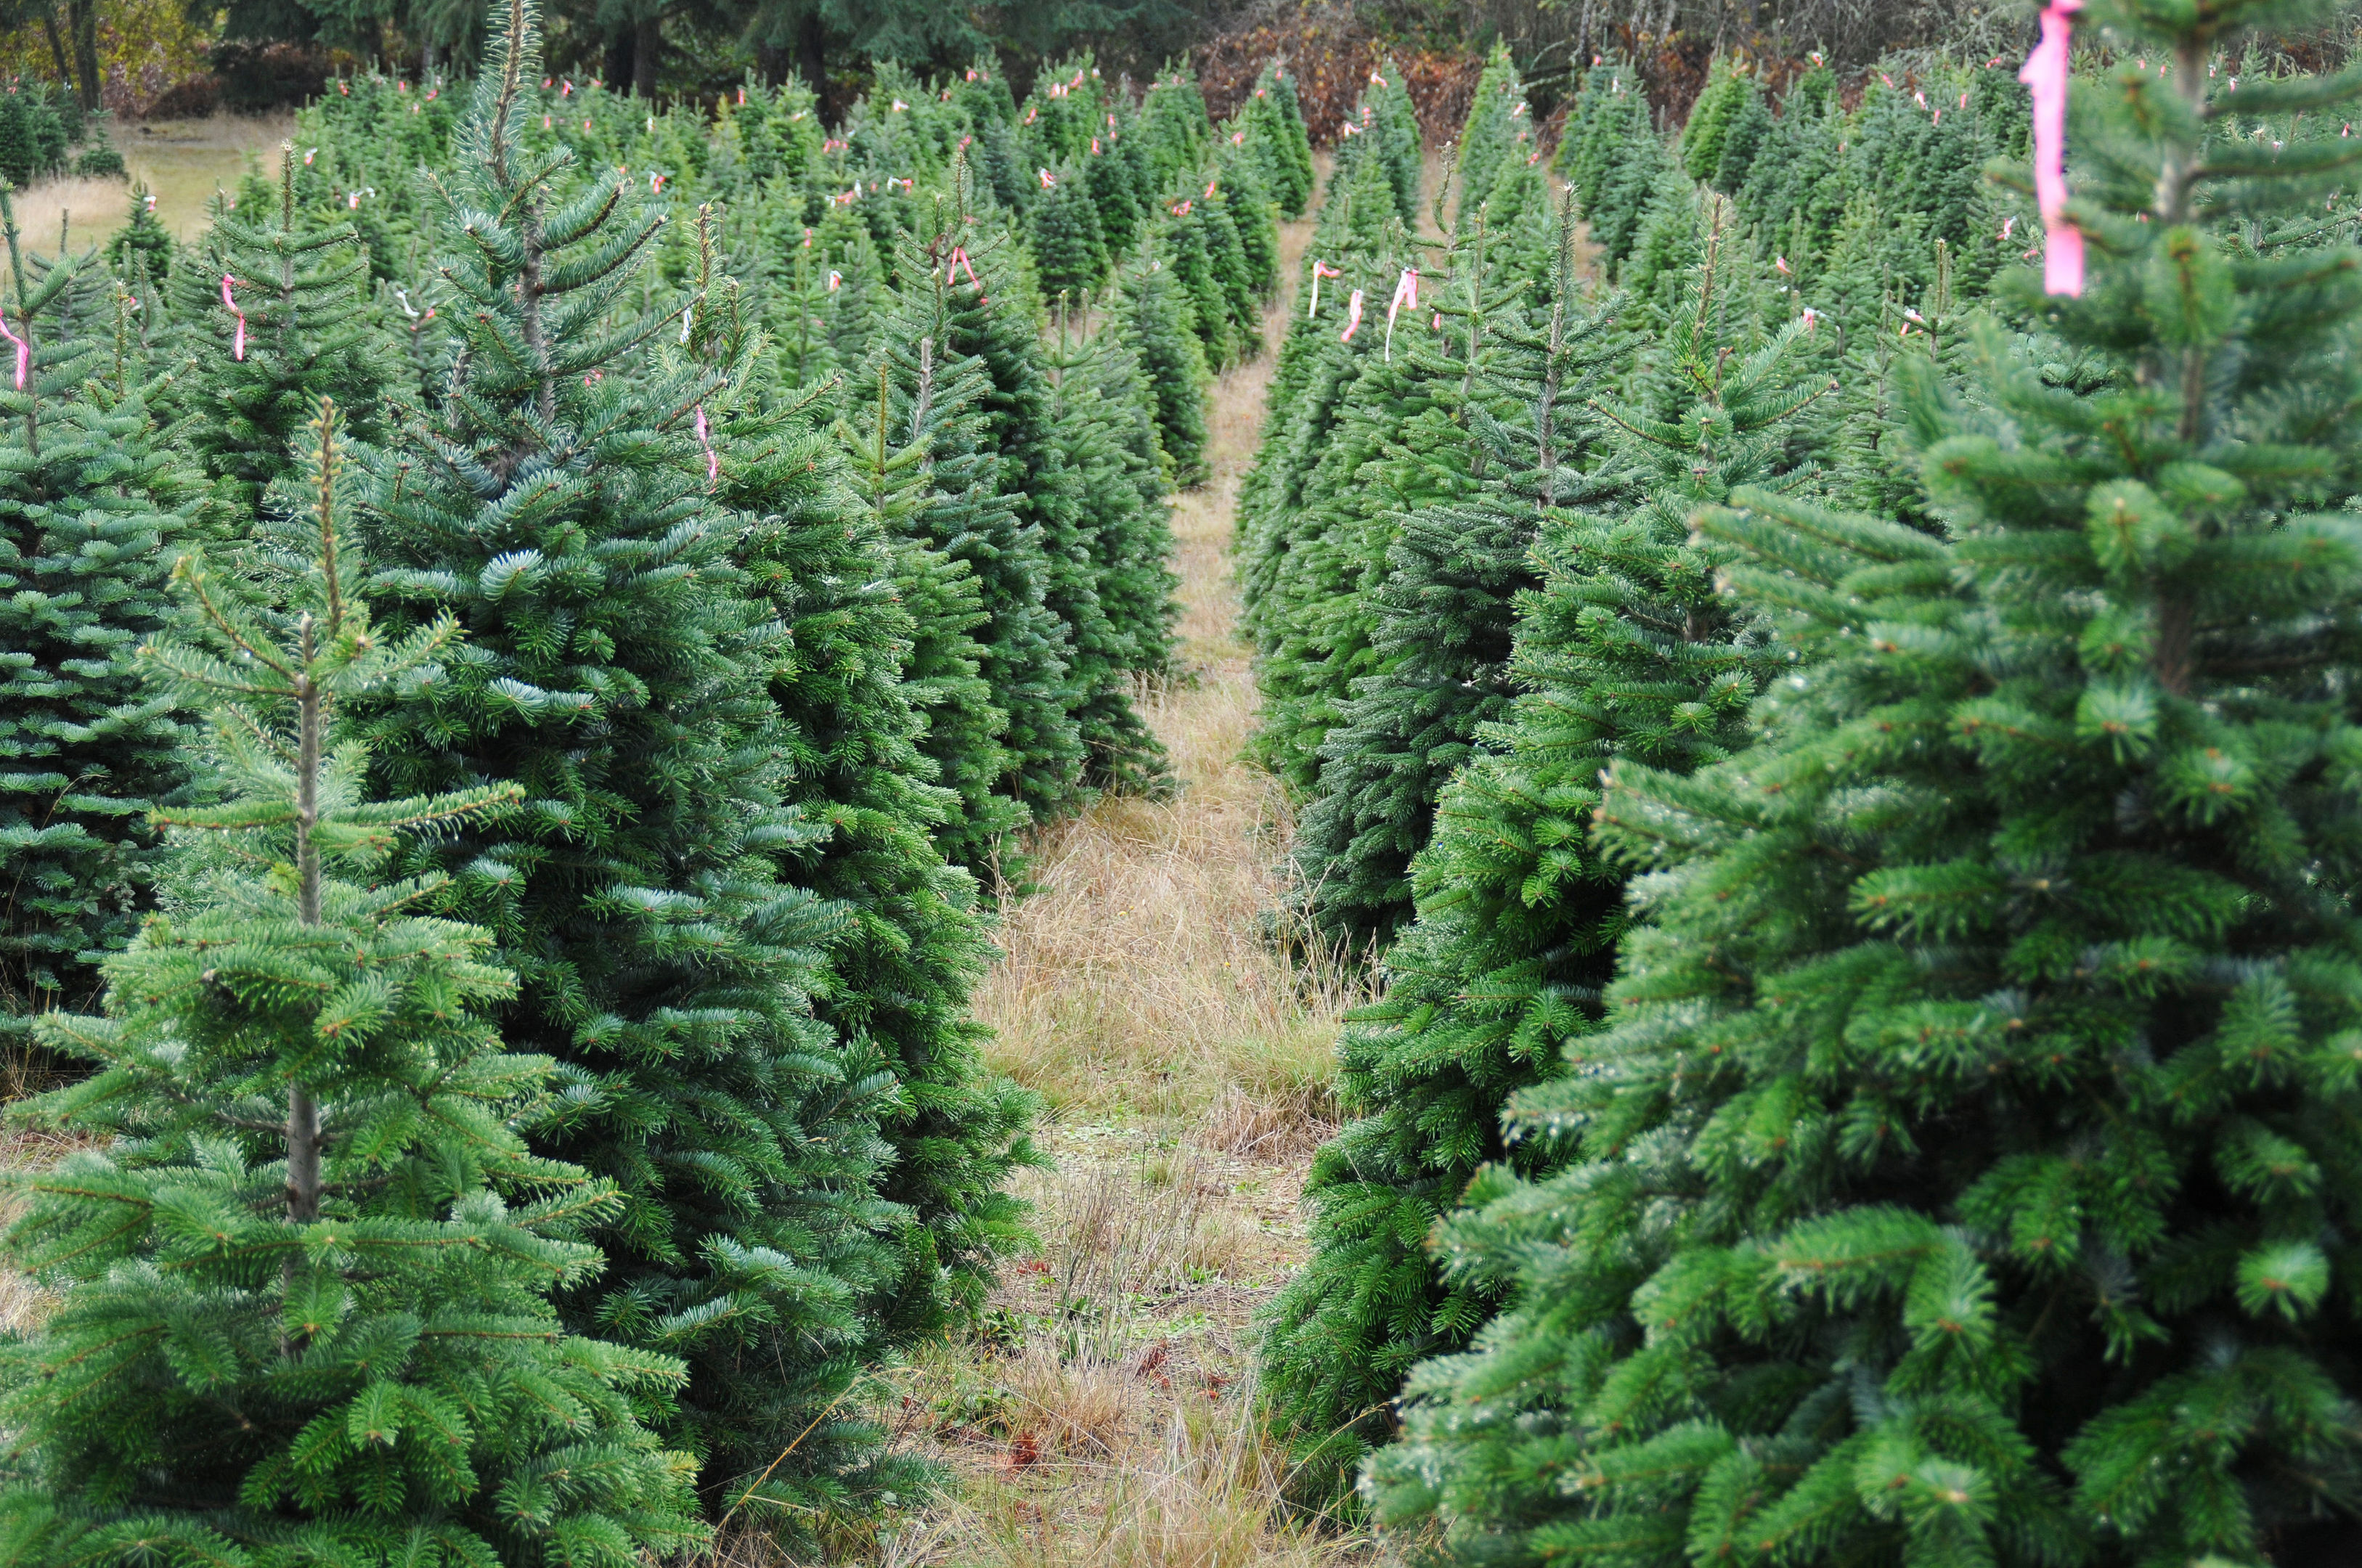 Nicola Sturgeon believes the forestry industry needs the public's support at this time of year